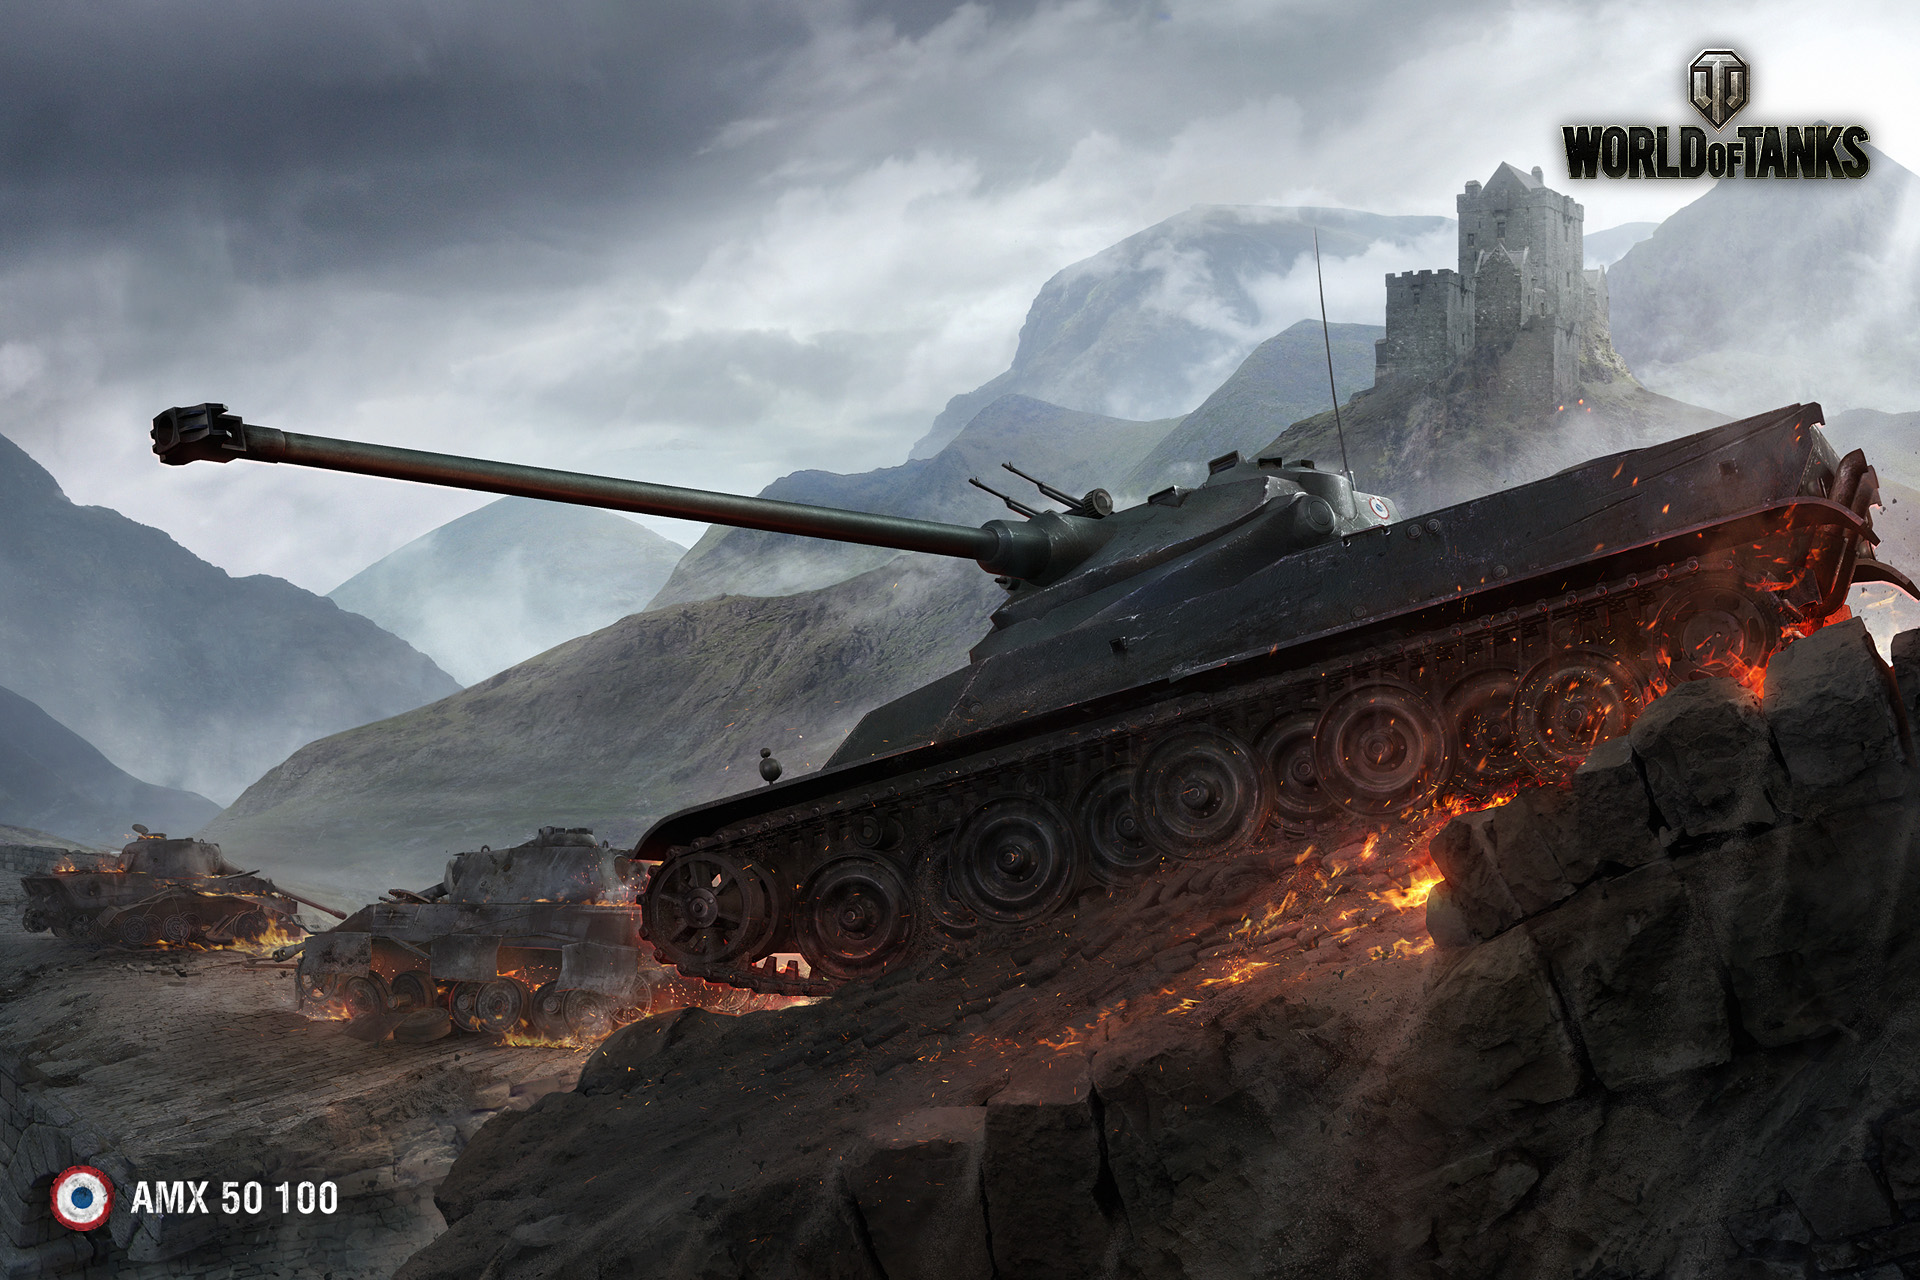 50 100 Wallpaper For March General News World Of Tanks